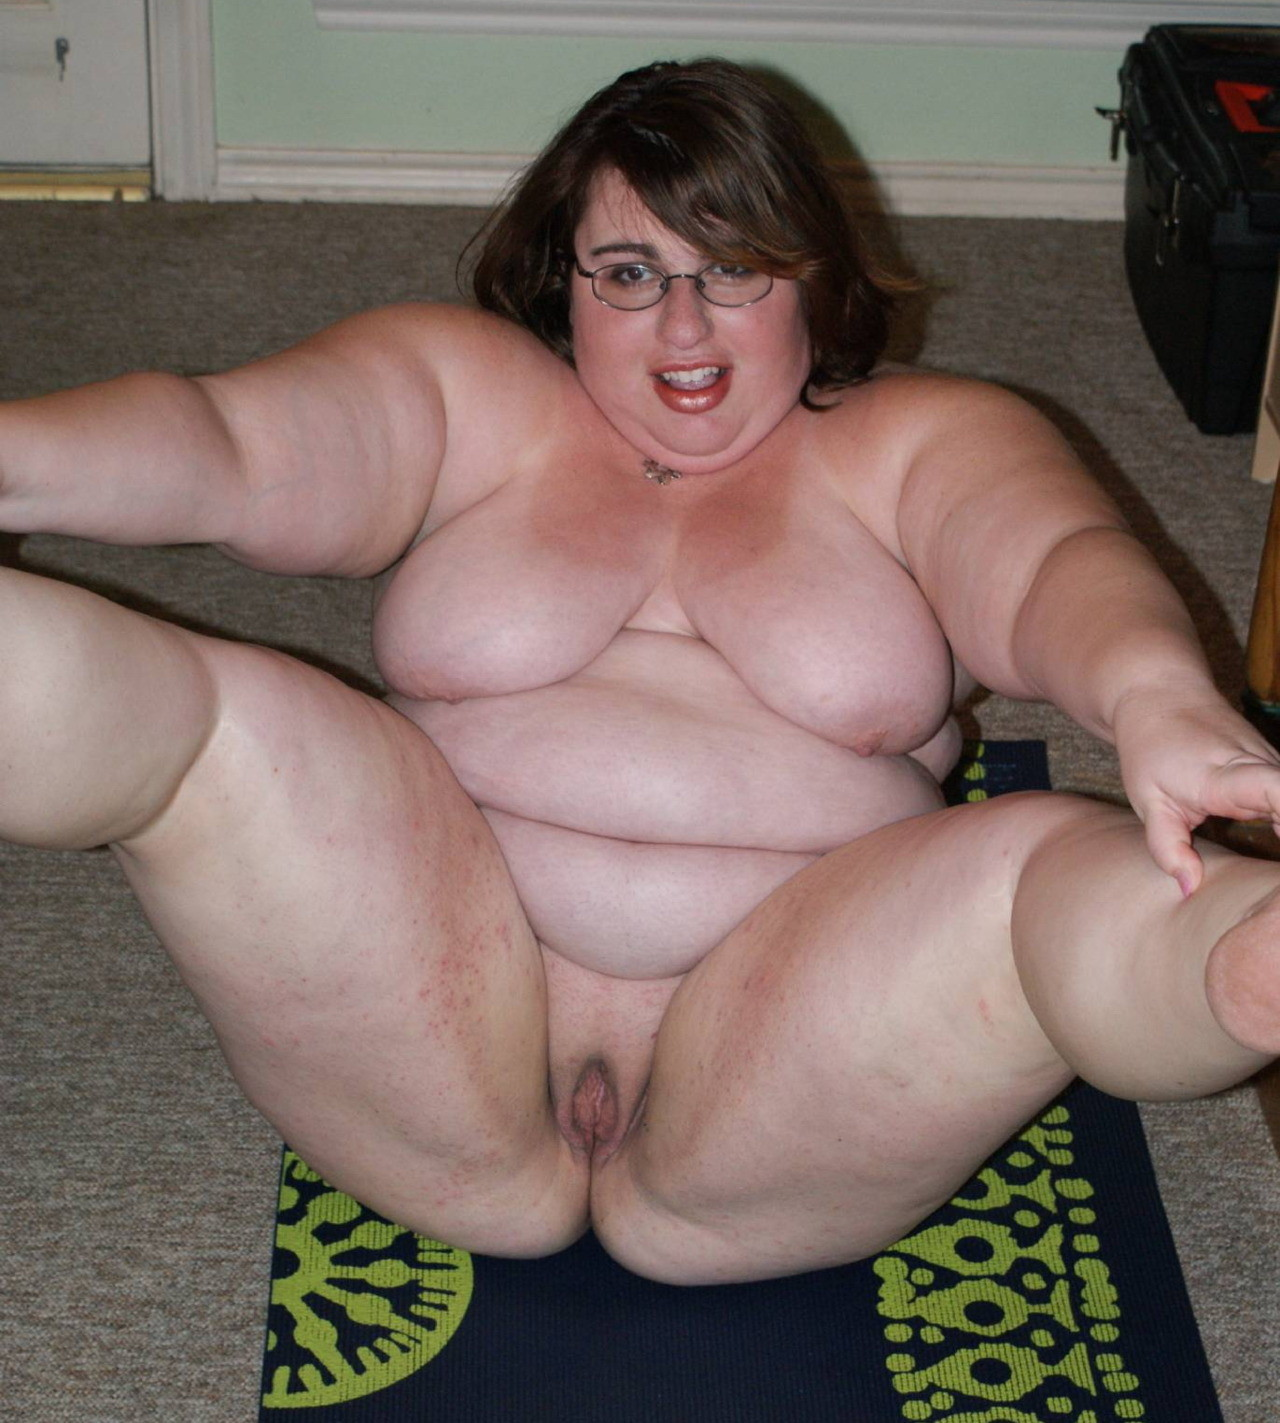 Too many fat chicks online dating